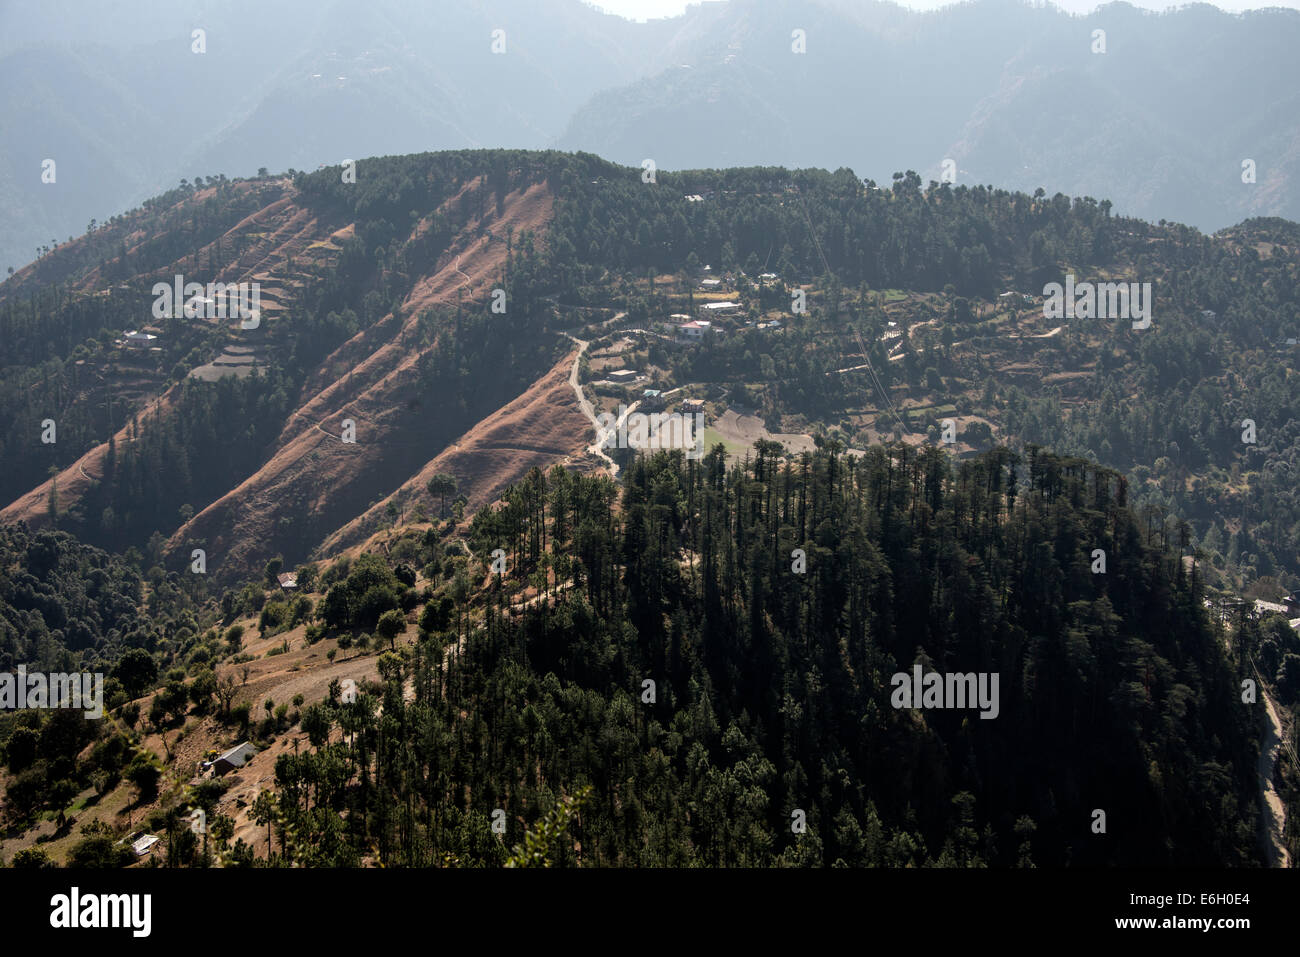 A mountain backdrop and farming country in the Himalayan foothills in Himachal Pradesh,India - Stock Image